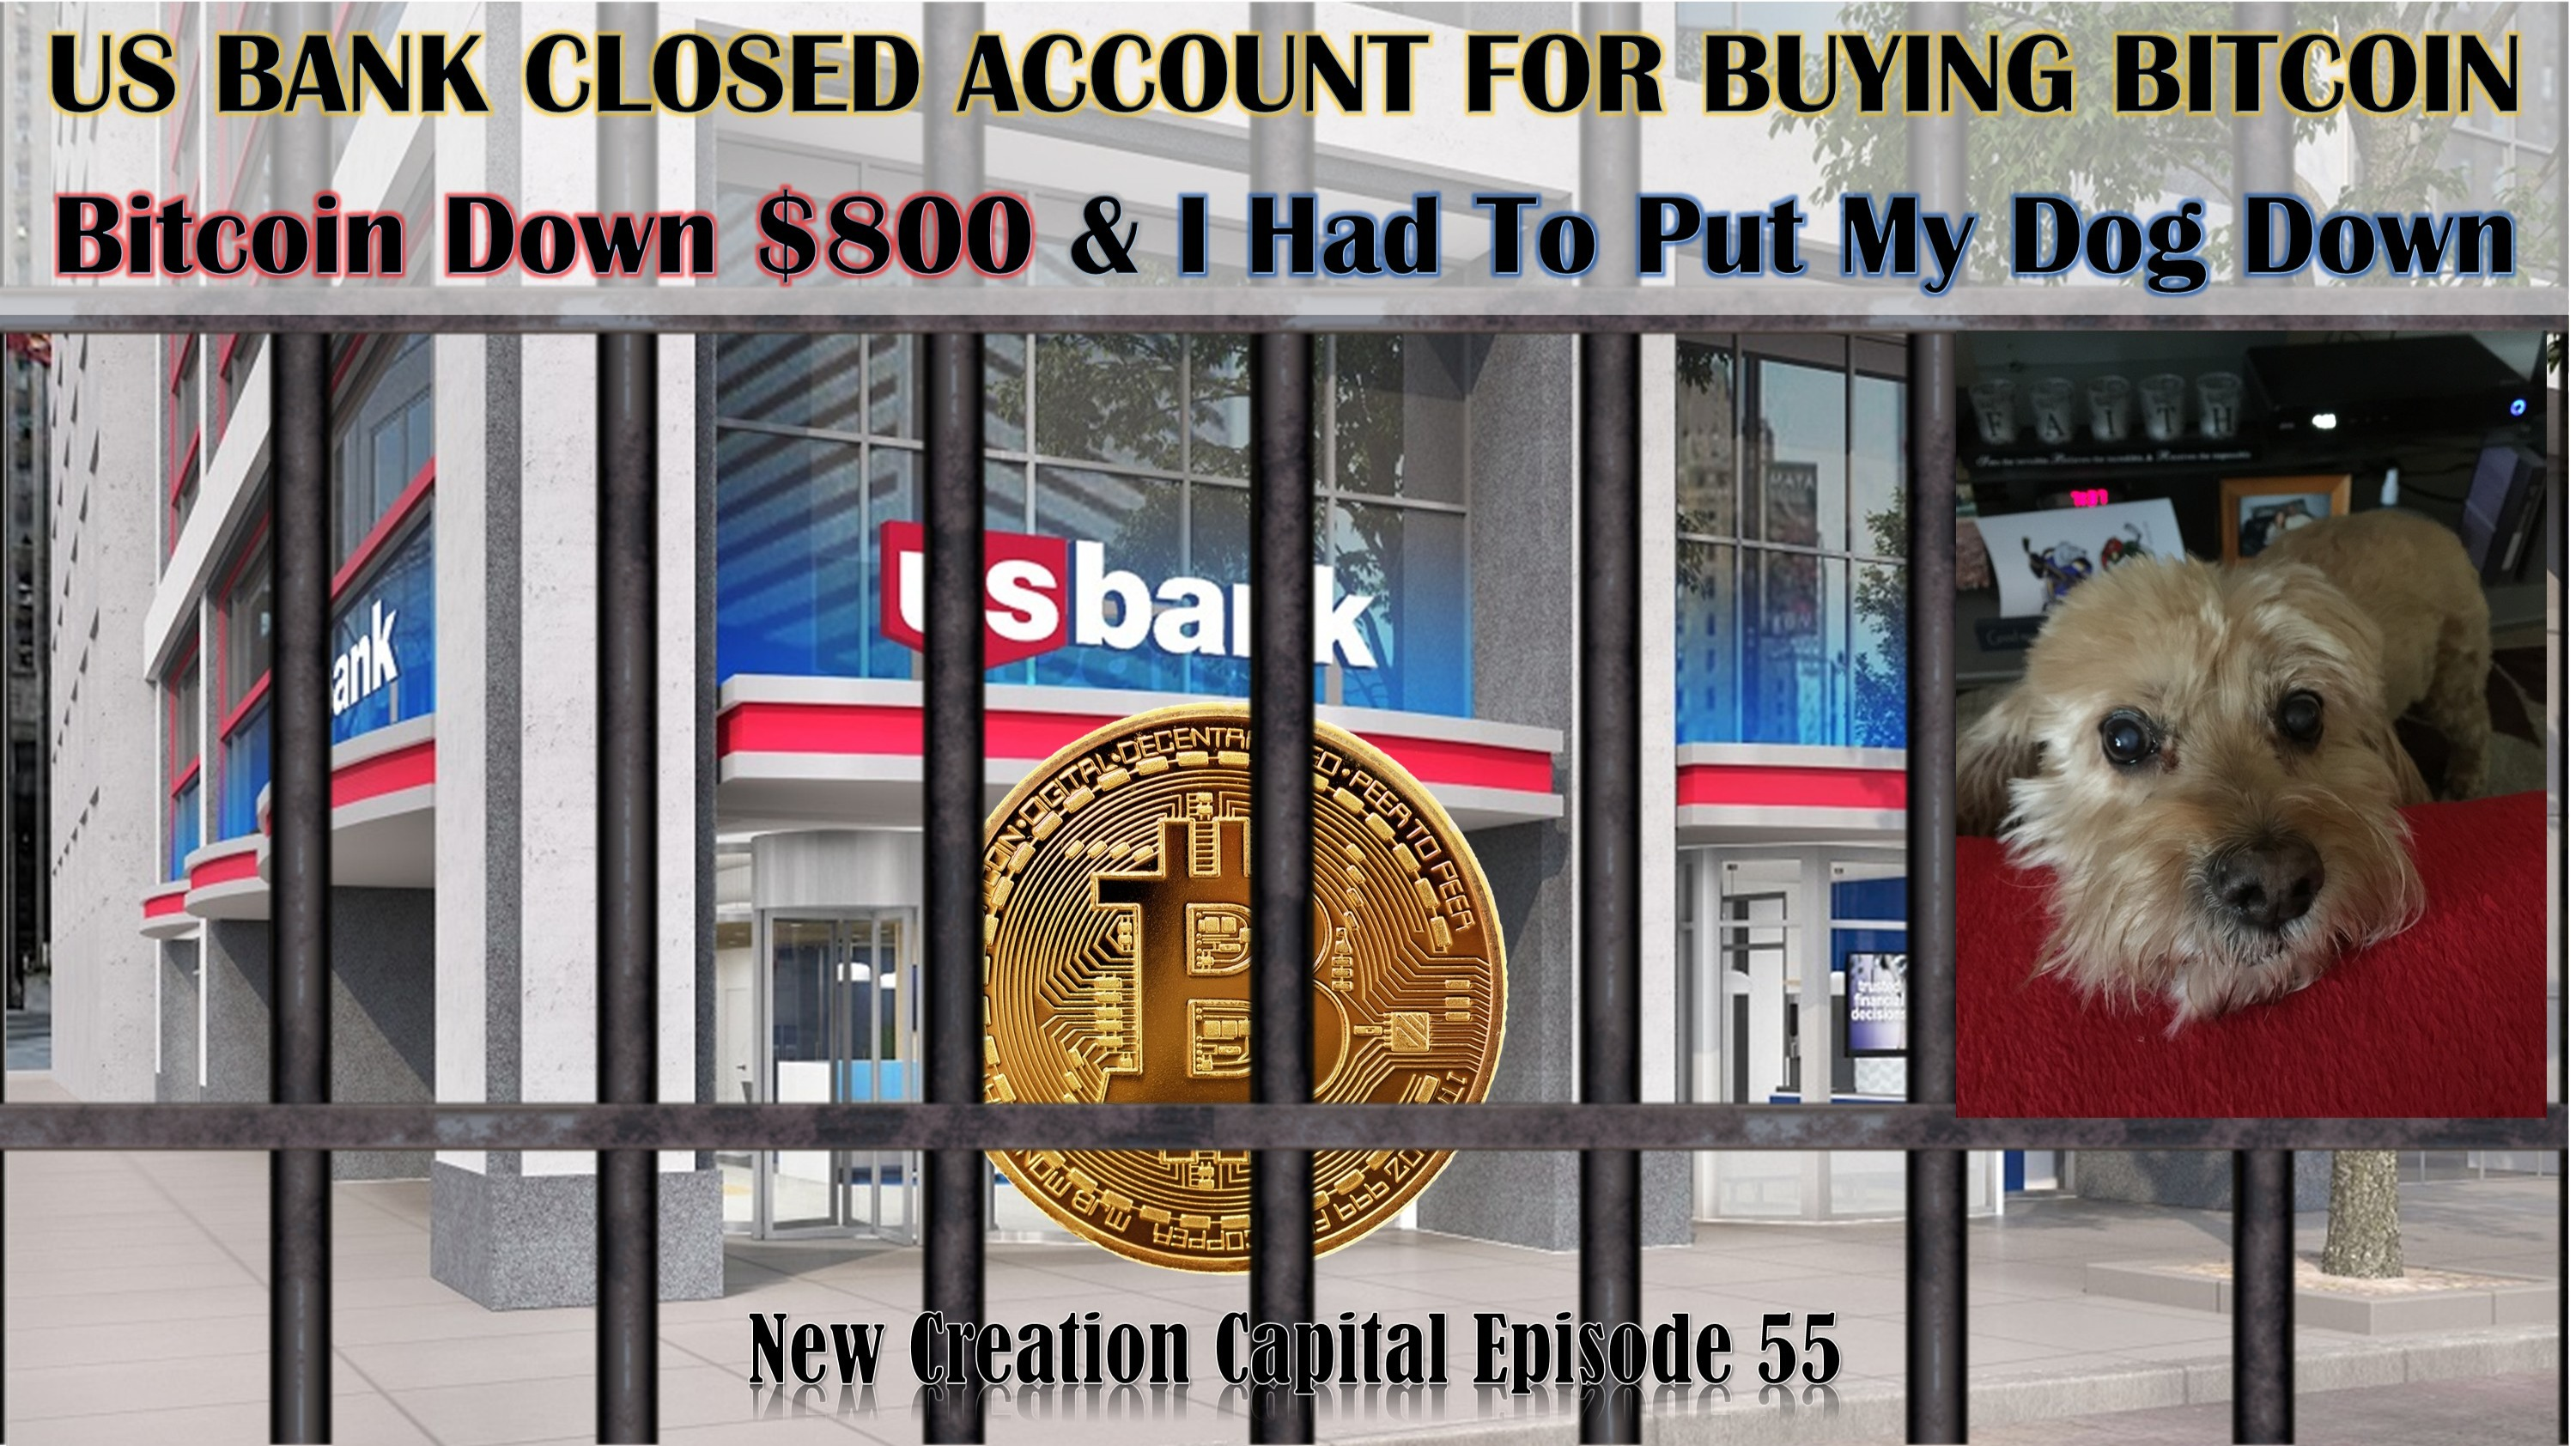 Episode 55: US Bank Closed Account For Buying Bitcoin Which is Down $800 & I Had To Put My Dog Down